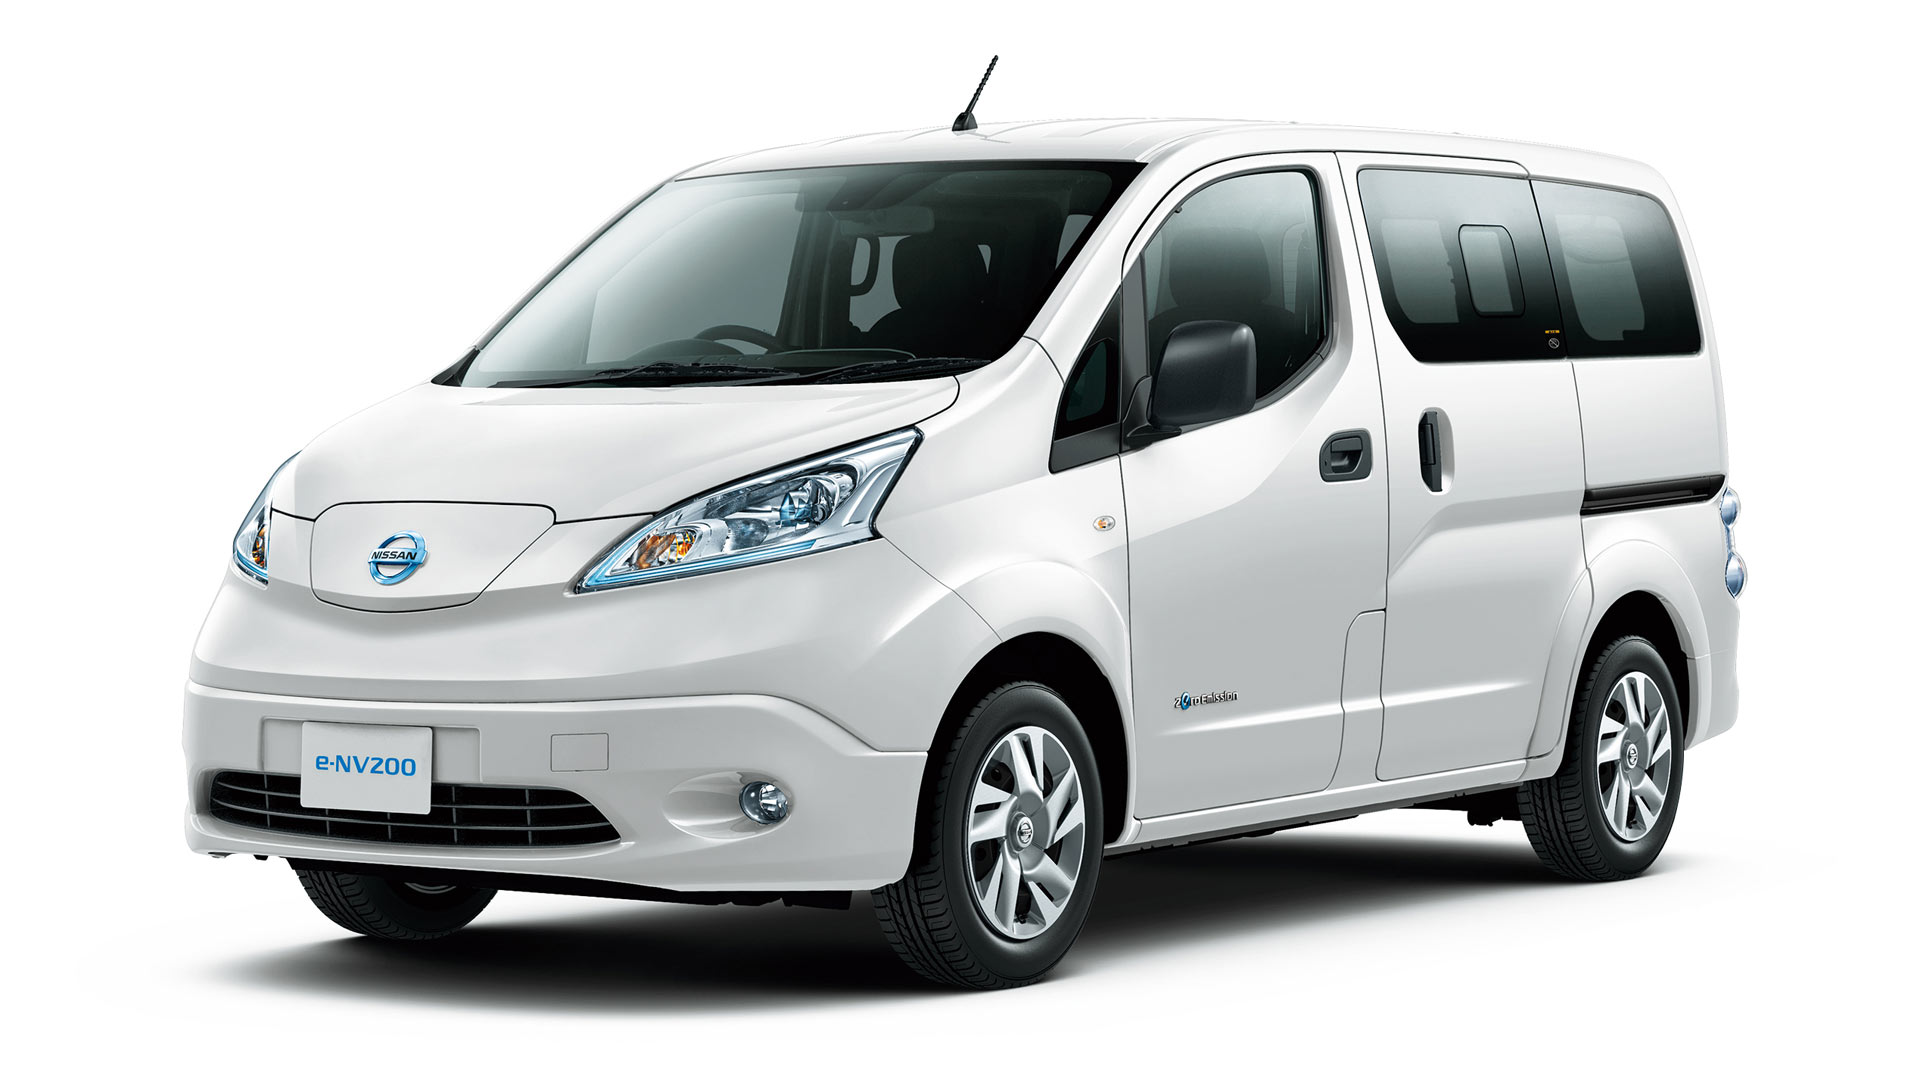 Nissan Leaf Battery Warranty >> Nissan e-NV200 updated with high-capacity battery - Autodevot